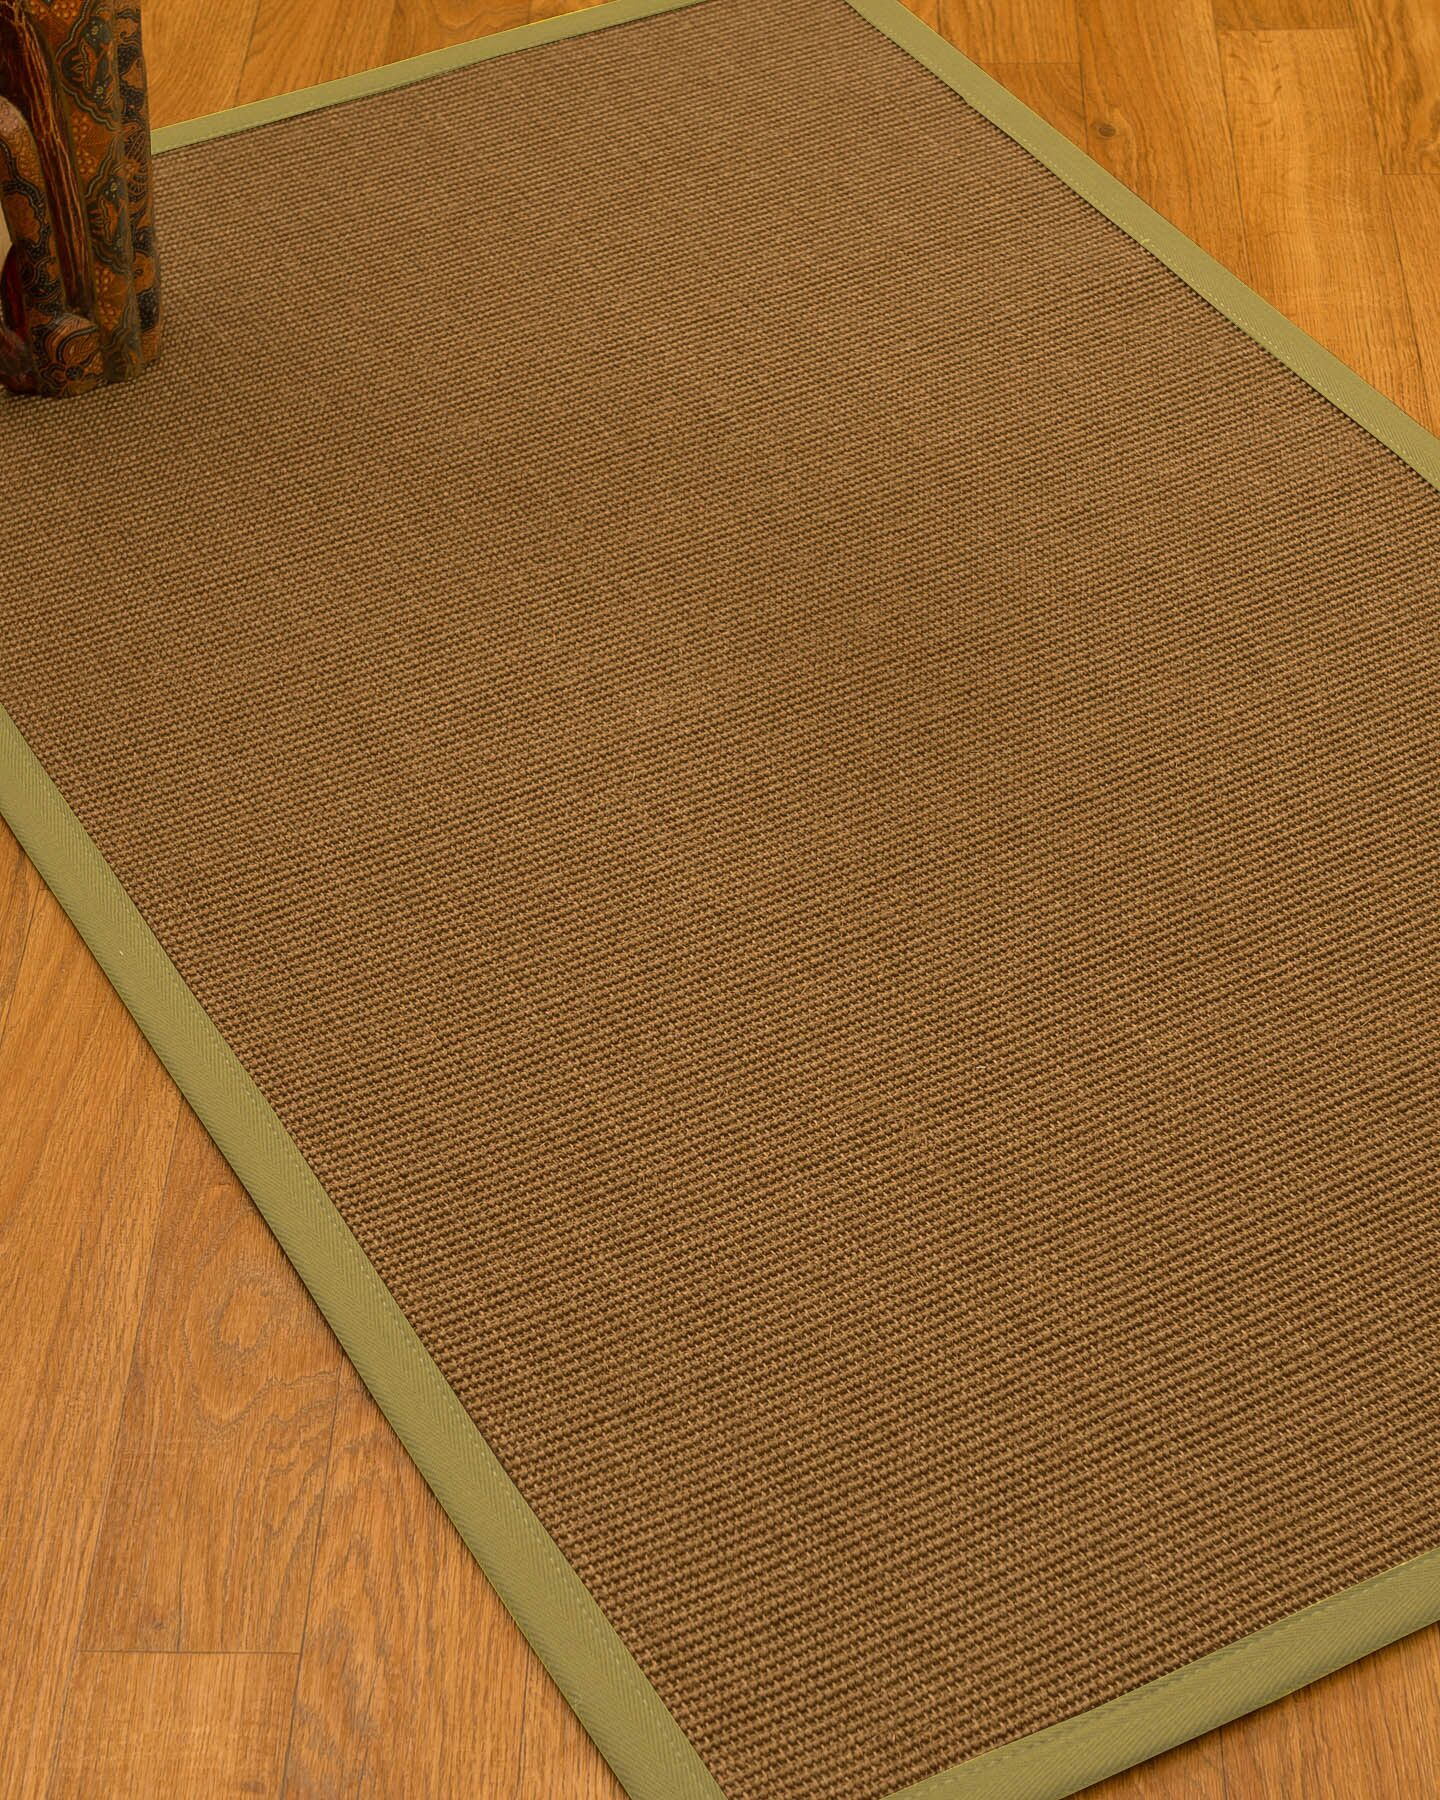 Huntwood Border Hand-Woven Brown/Olive Area Rug Rug Pad Included: No, Rug Size: Runner 2'6